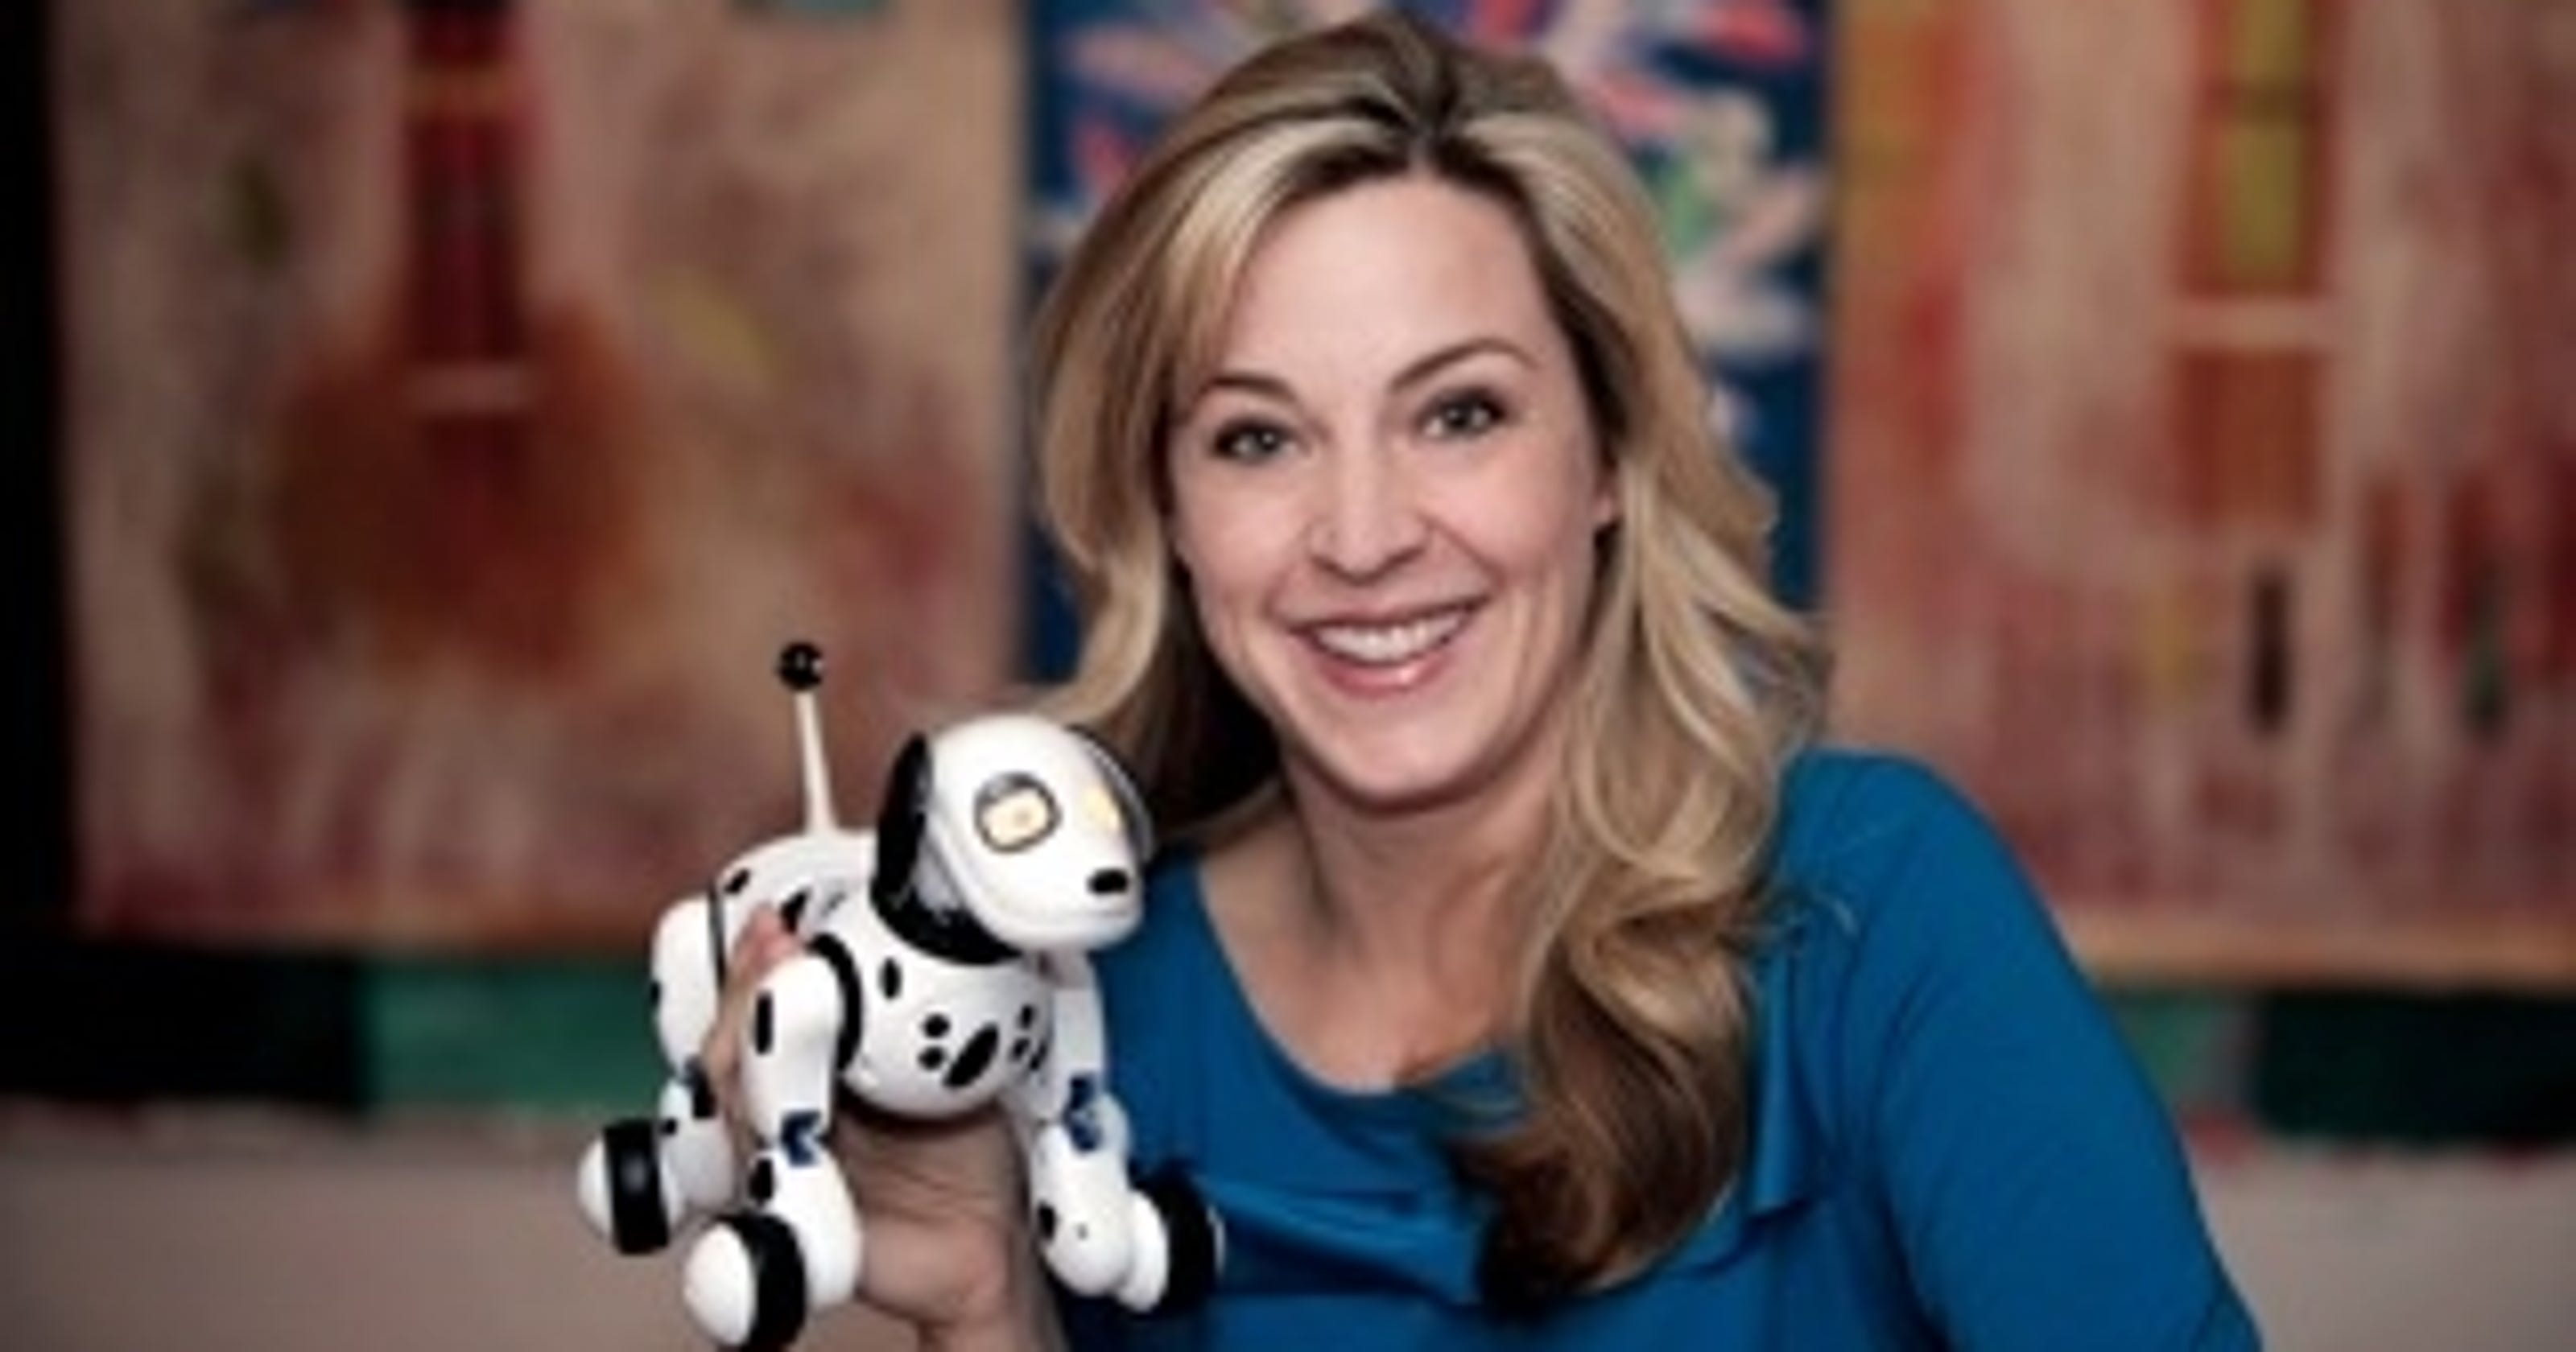 At Toy Fair 2013, robotic dogs, makeup mirrors and more